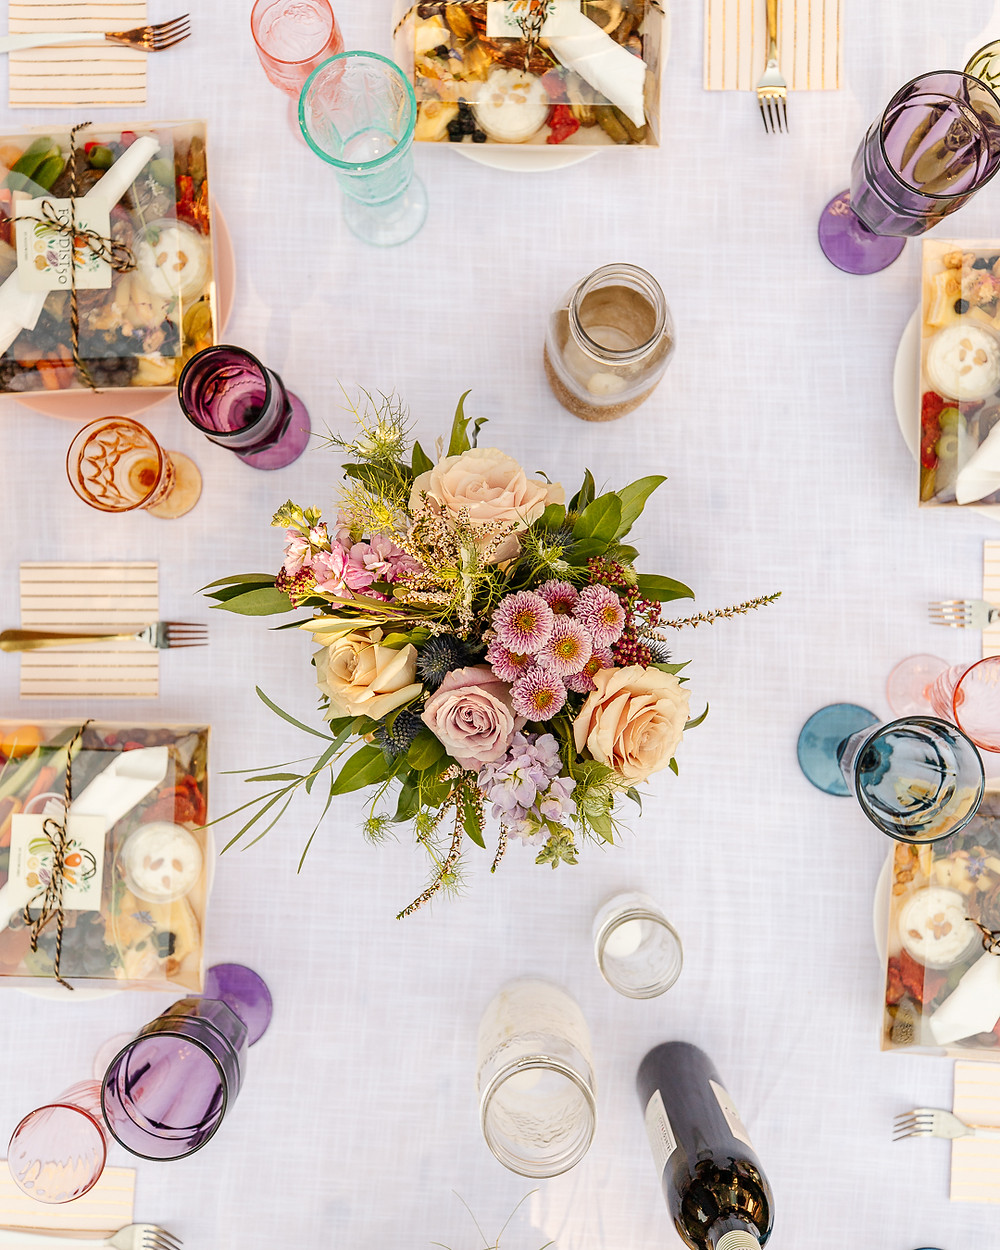 An evening backyard boho garden party with gorgeous flowers, vintage rugs, charcuterie wine, twinkle lights, coloured glasses, table decor, boho decor and all your best girlfriends.